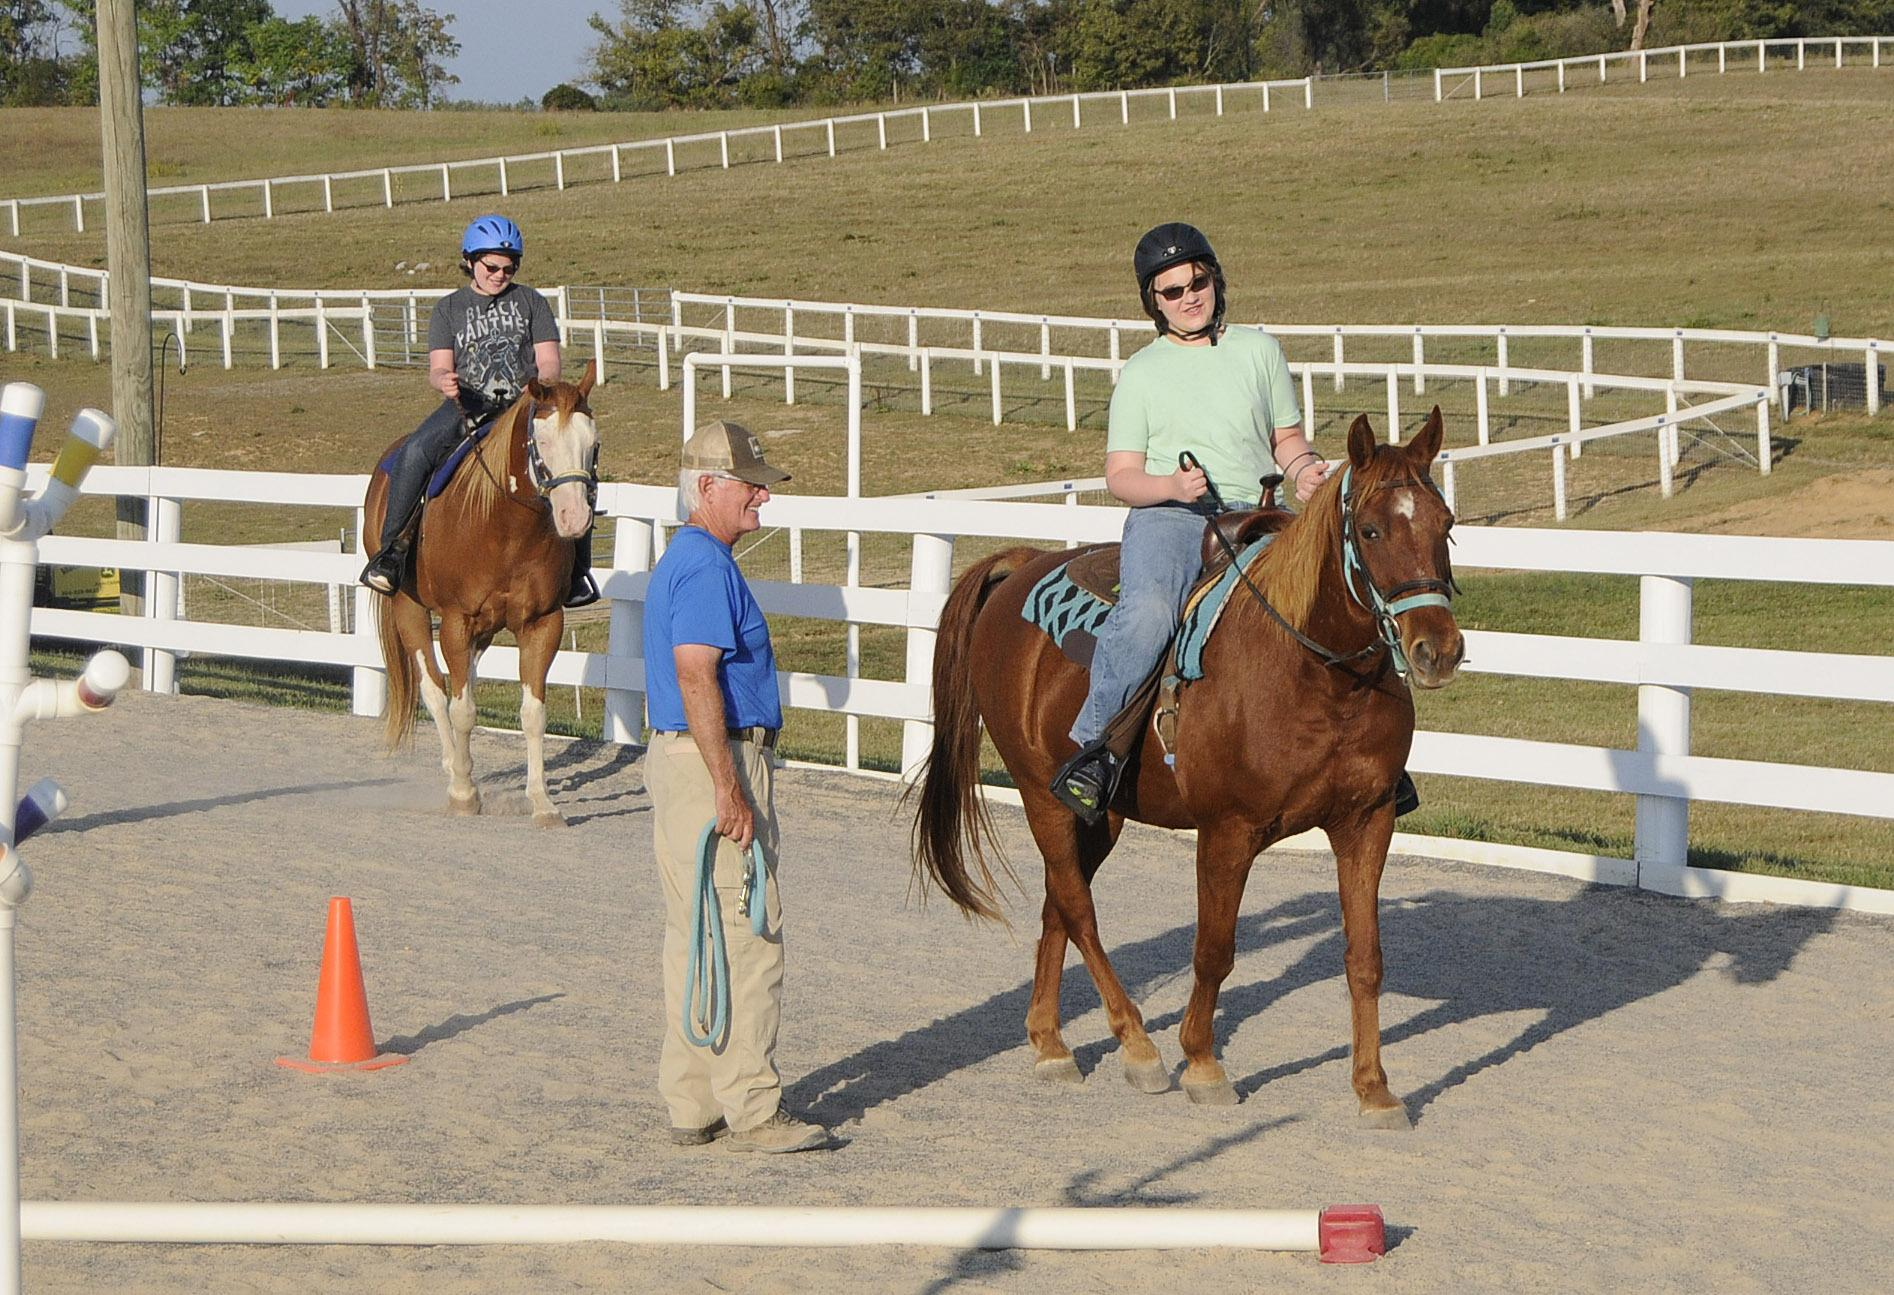 WV horse therapy program aids those with disabilities